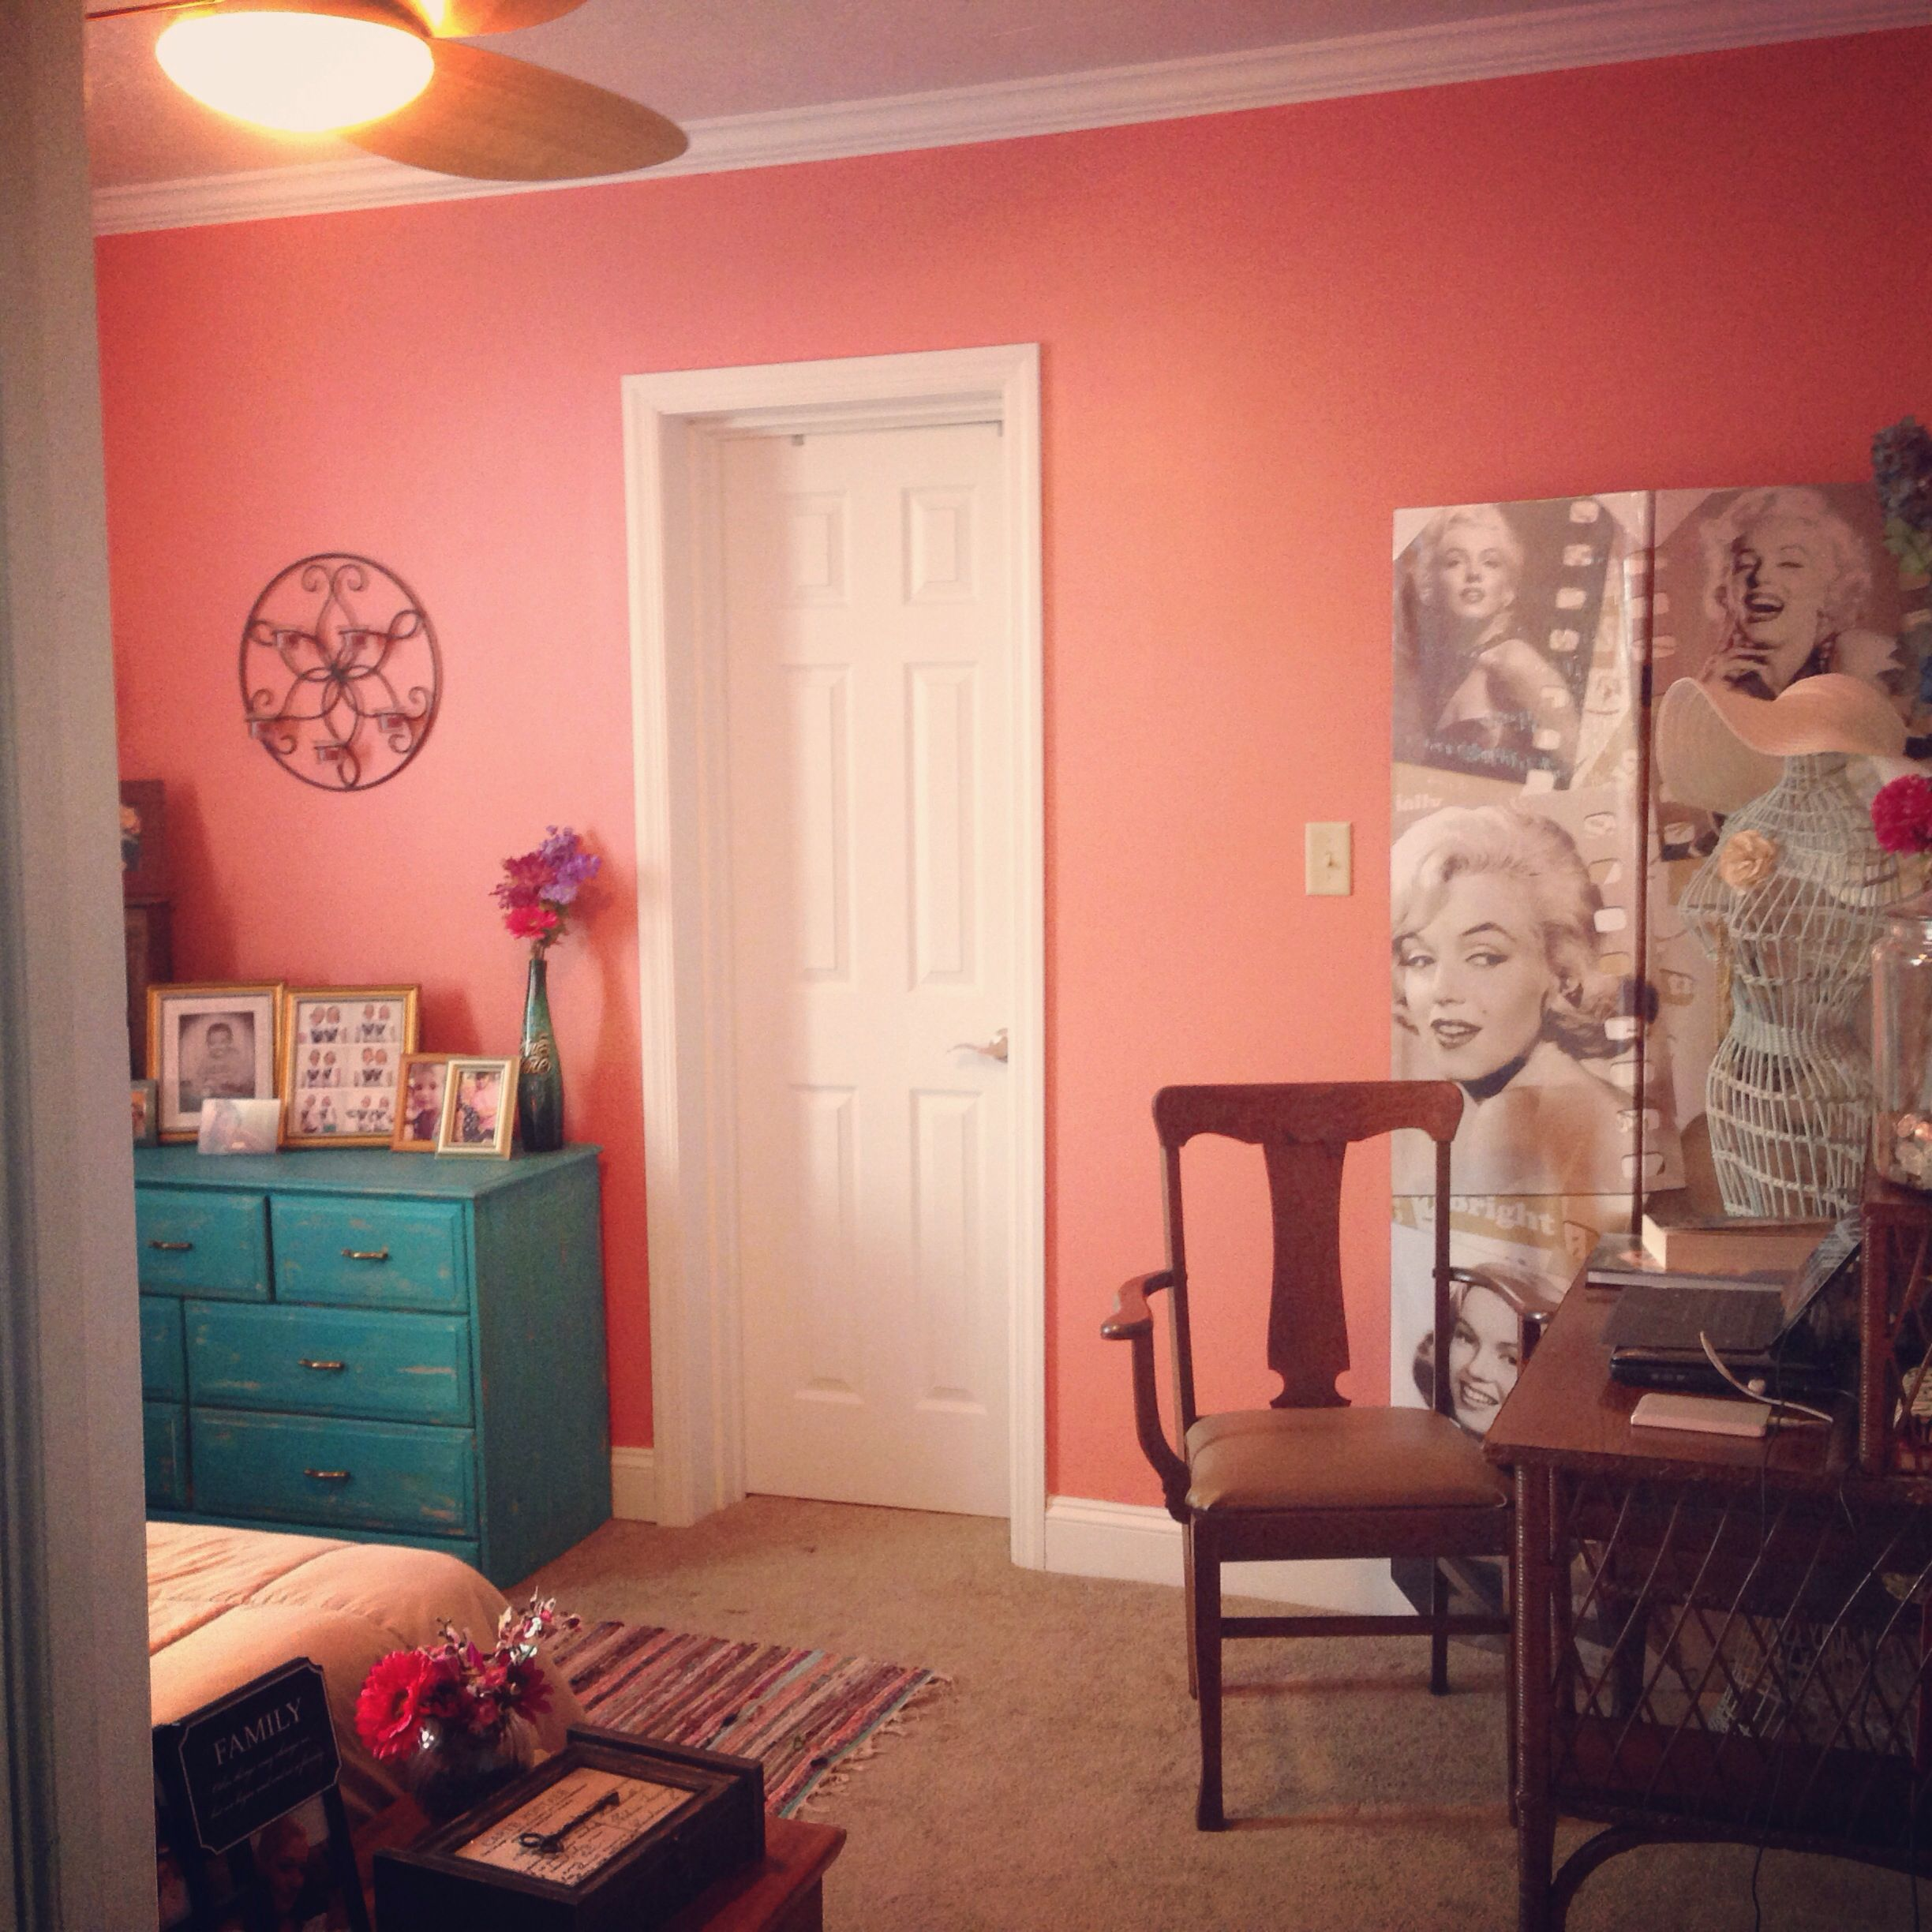 Behr Mellow Coral, Refurbished Teal Dresser ECLECTIC (paint for ...